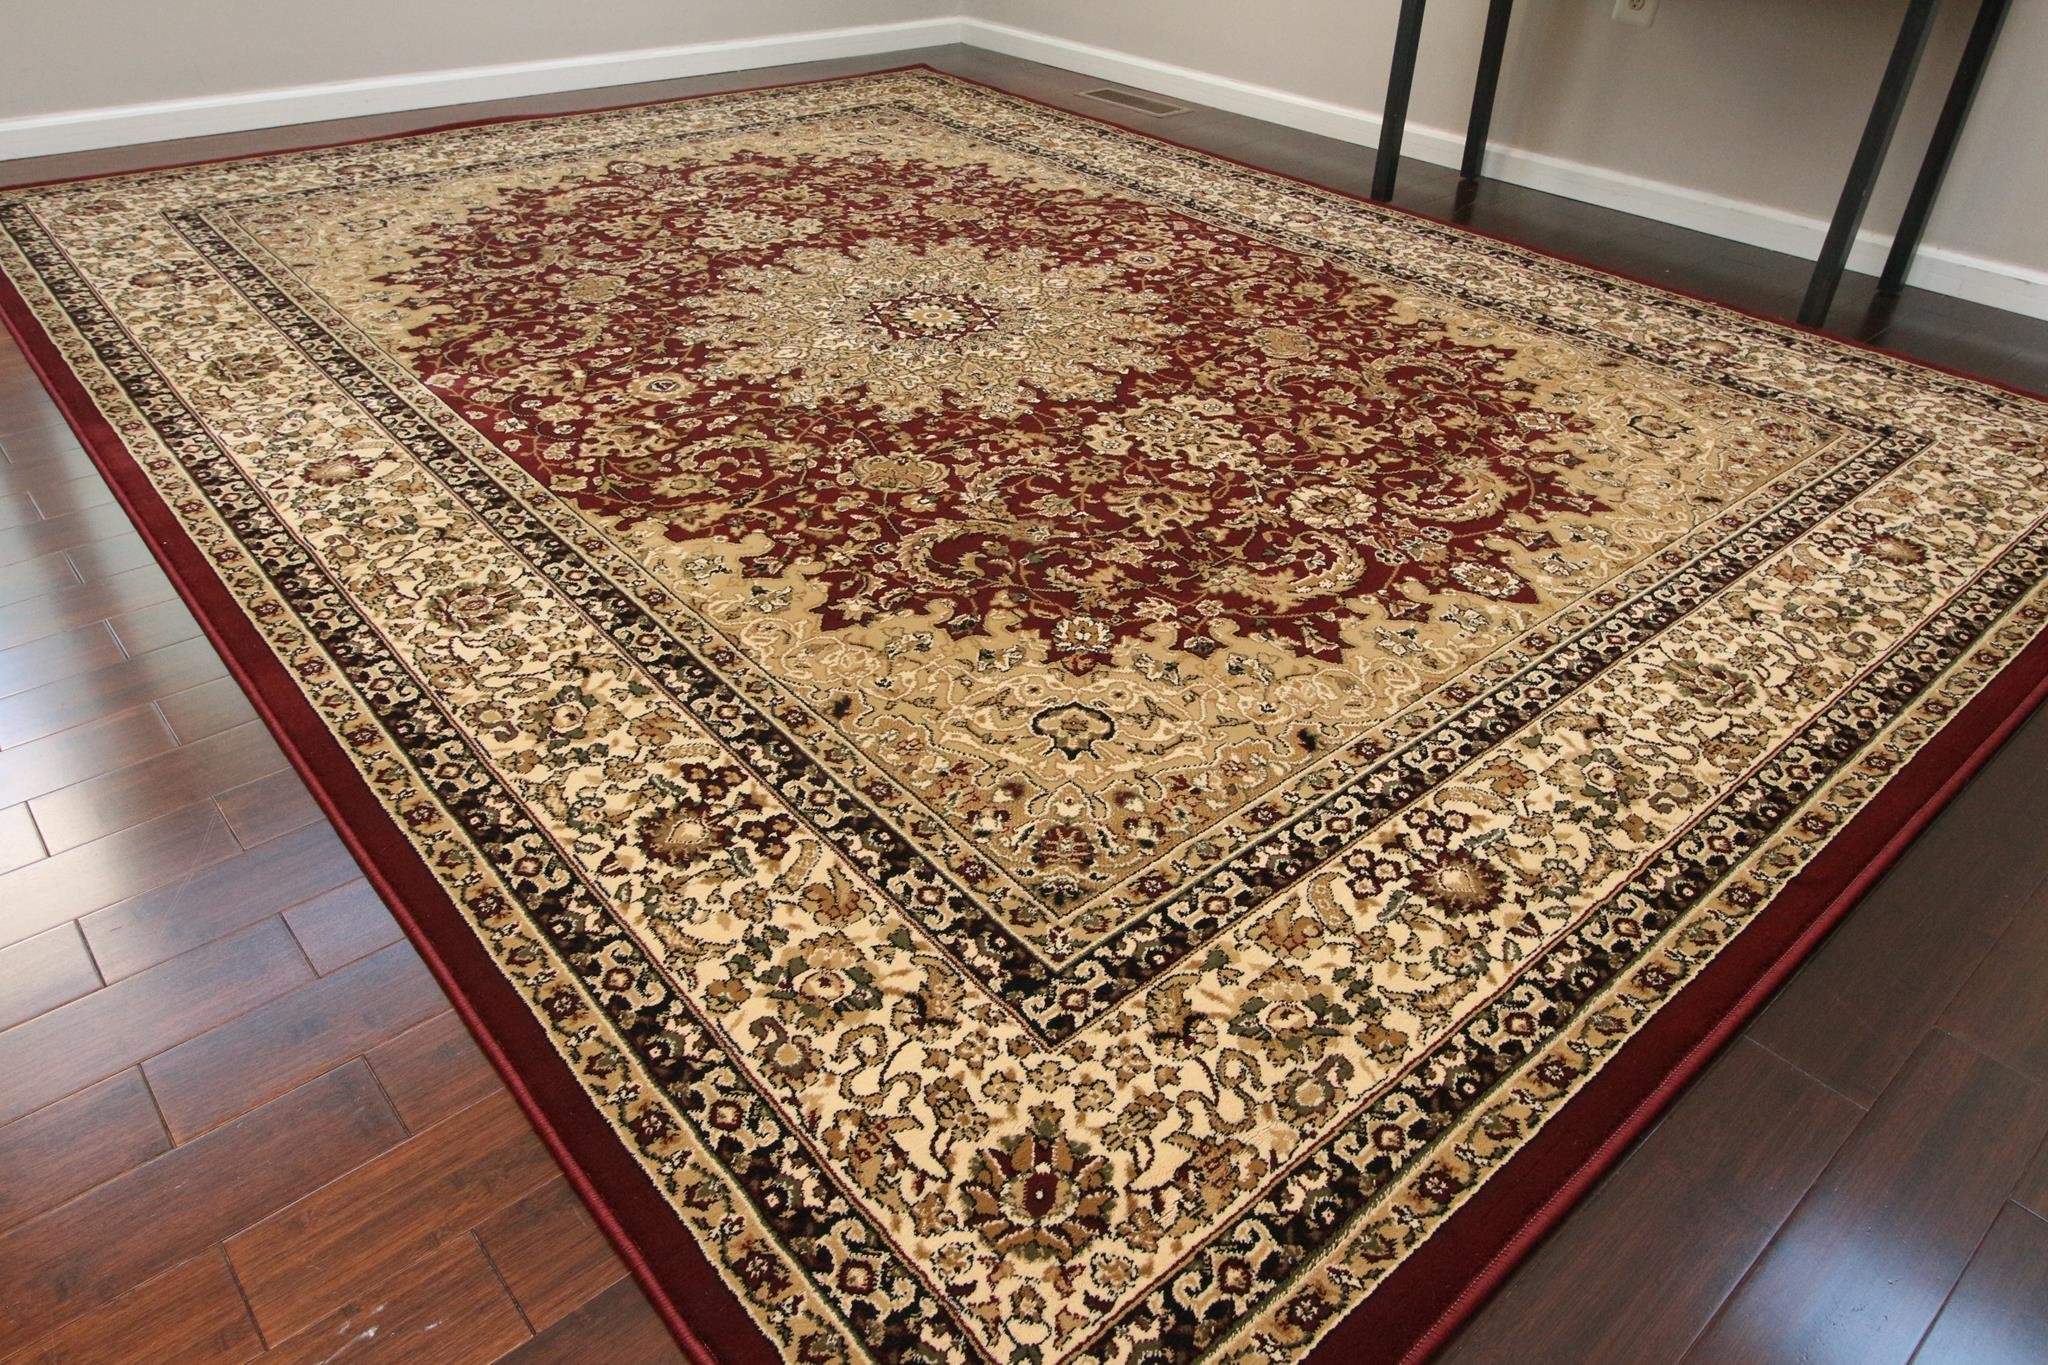 Dunes Traditional Isfahan High Density 1'' Thick Wool 1.5 Million Point Persian Area Rug, 2' x 3', Burgundy